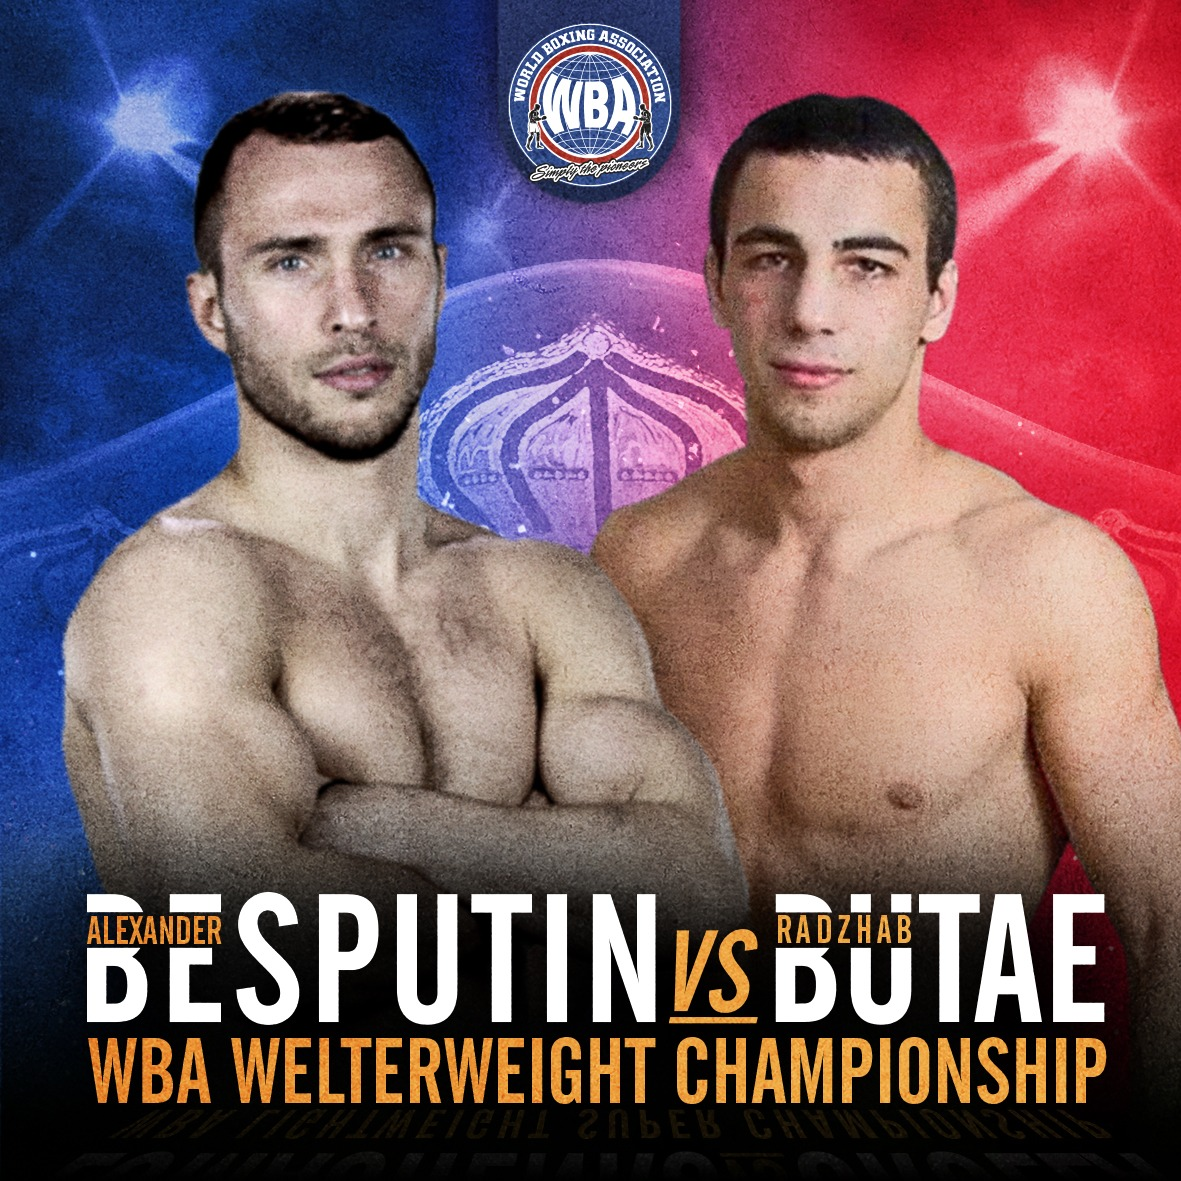 Besputin and Butaev will fight for the vacant WBA World Welterweight Title